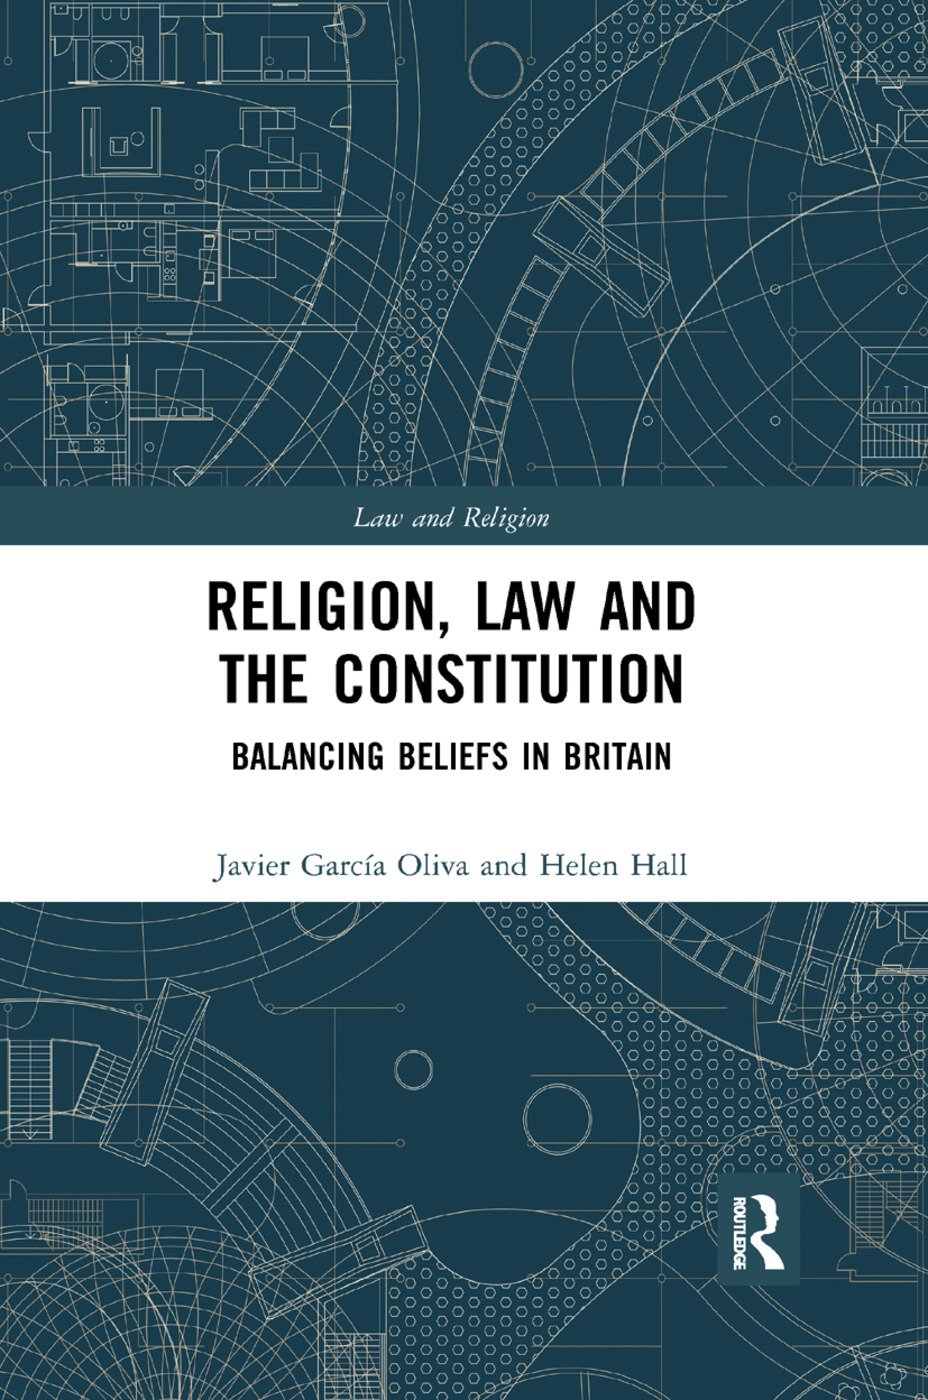 Religion, Law and the Constitution: Balancing Beliefs in Britain book cover